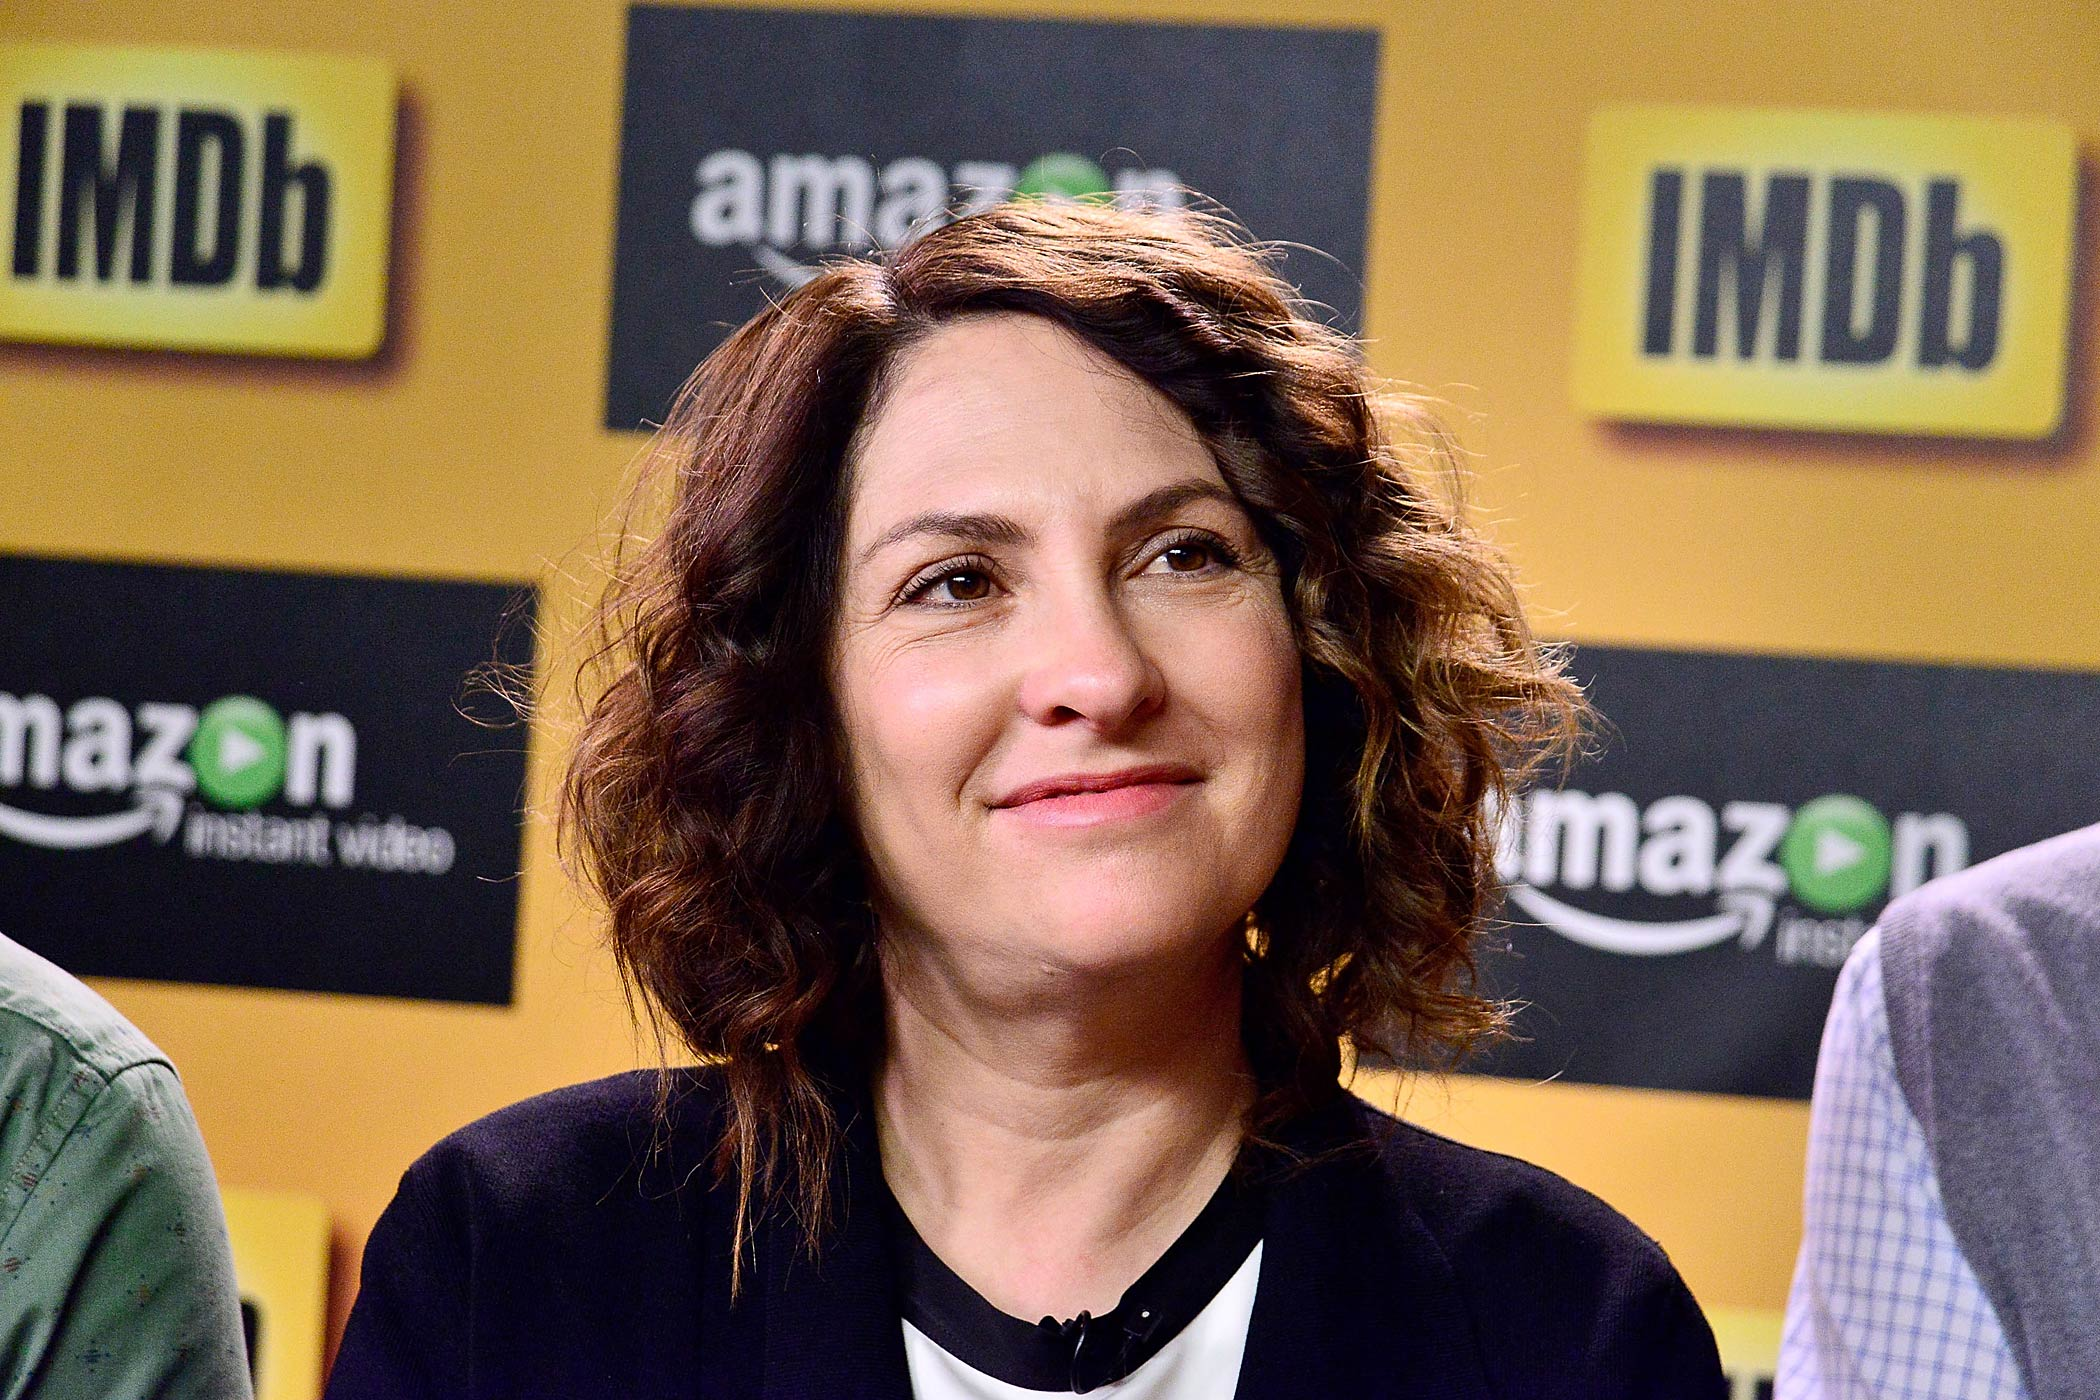 Jill Soloway attends the IMDb & Amazon Instant Video Studio on Jan. 26, 2015 in Park City, Utah.